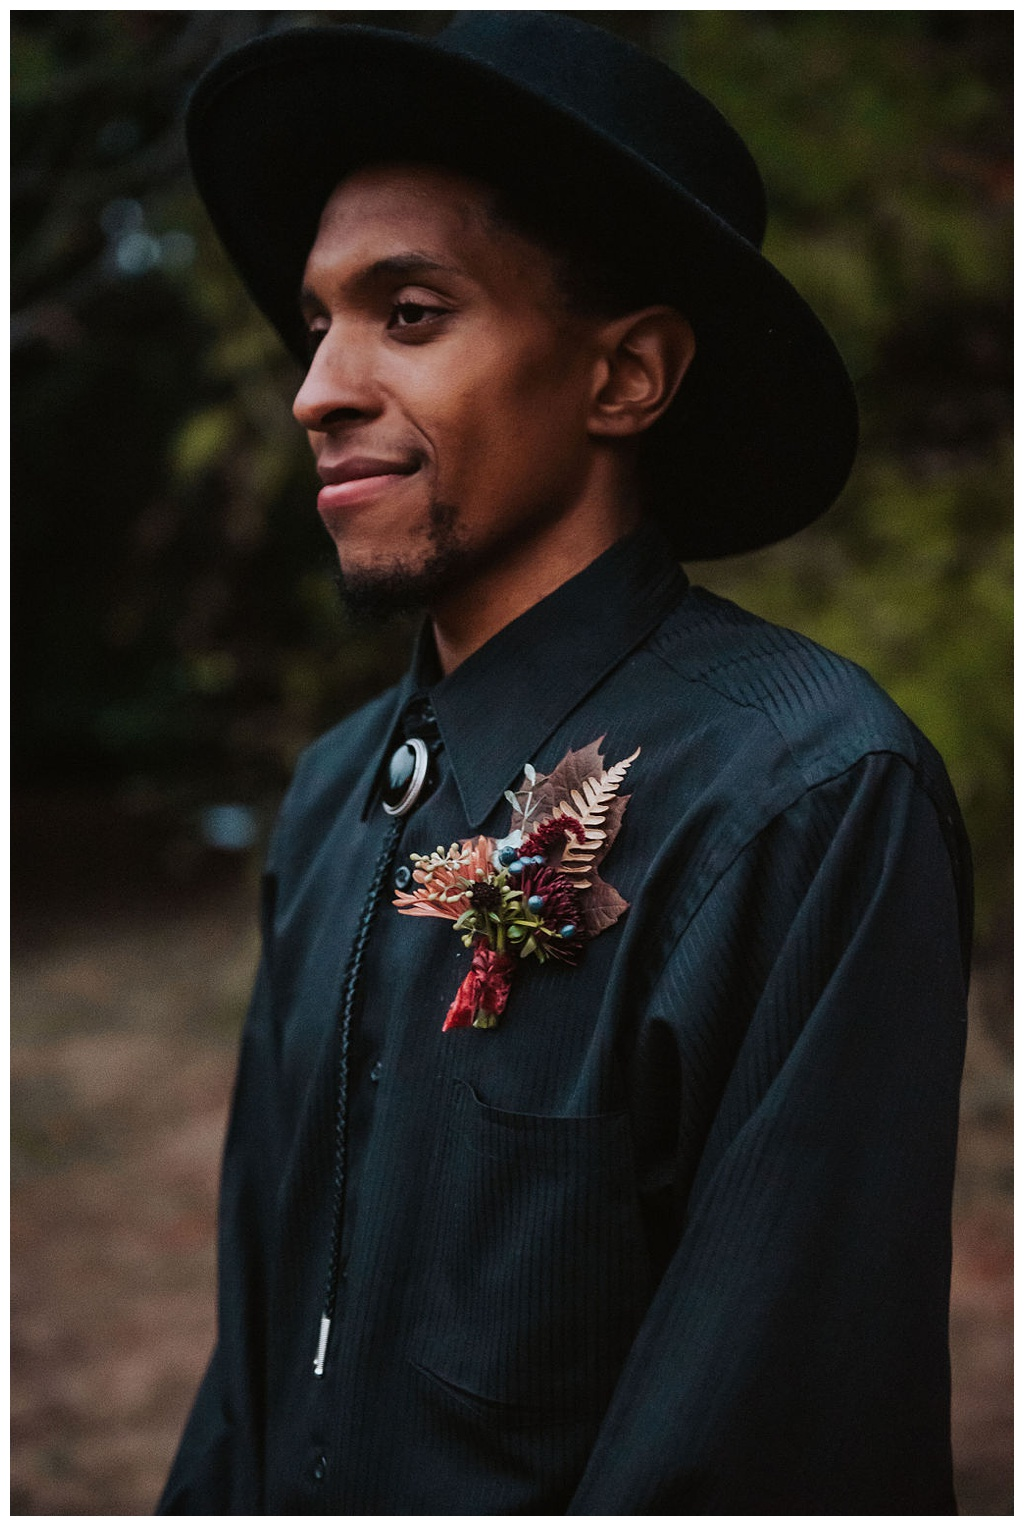 The groom looking away from his bride, with a black shirt, bolo tie, black hat, and fall boutonniere.